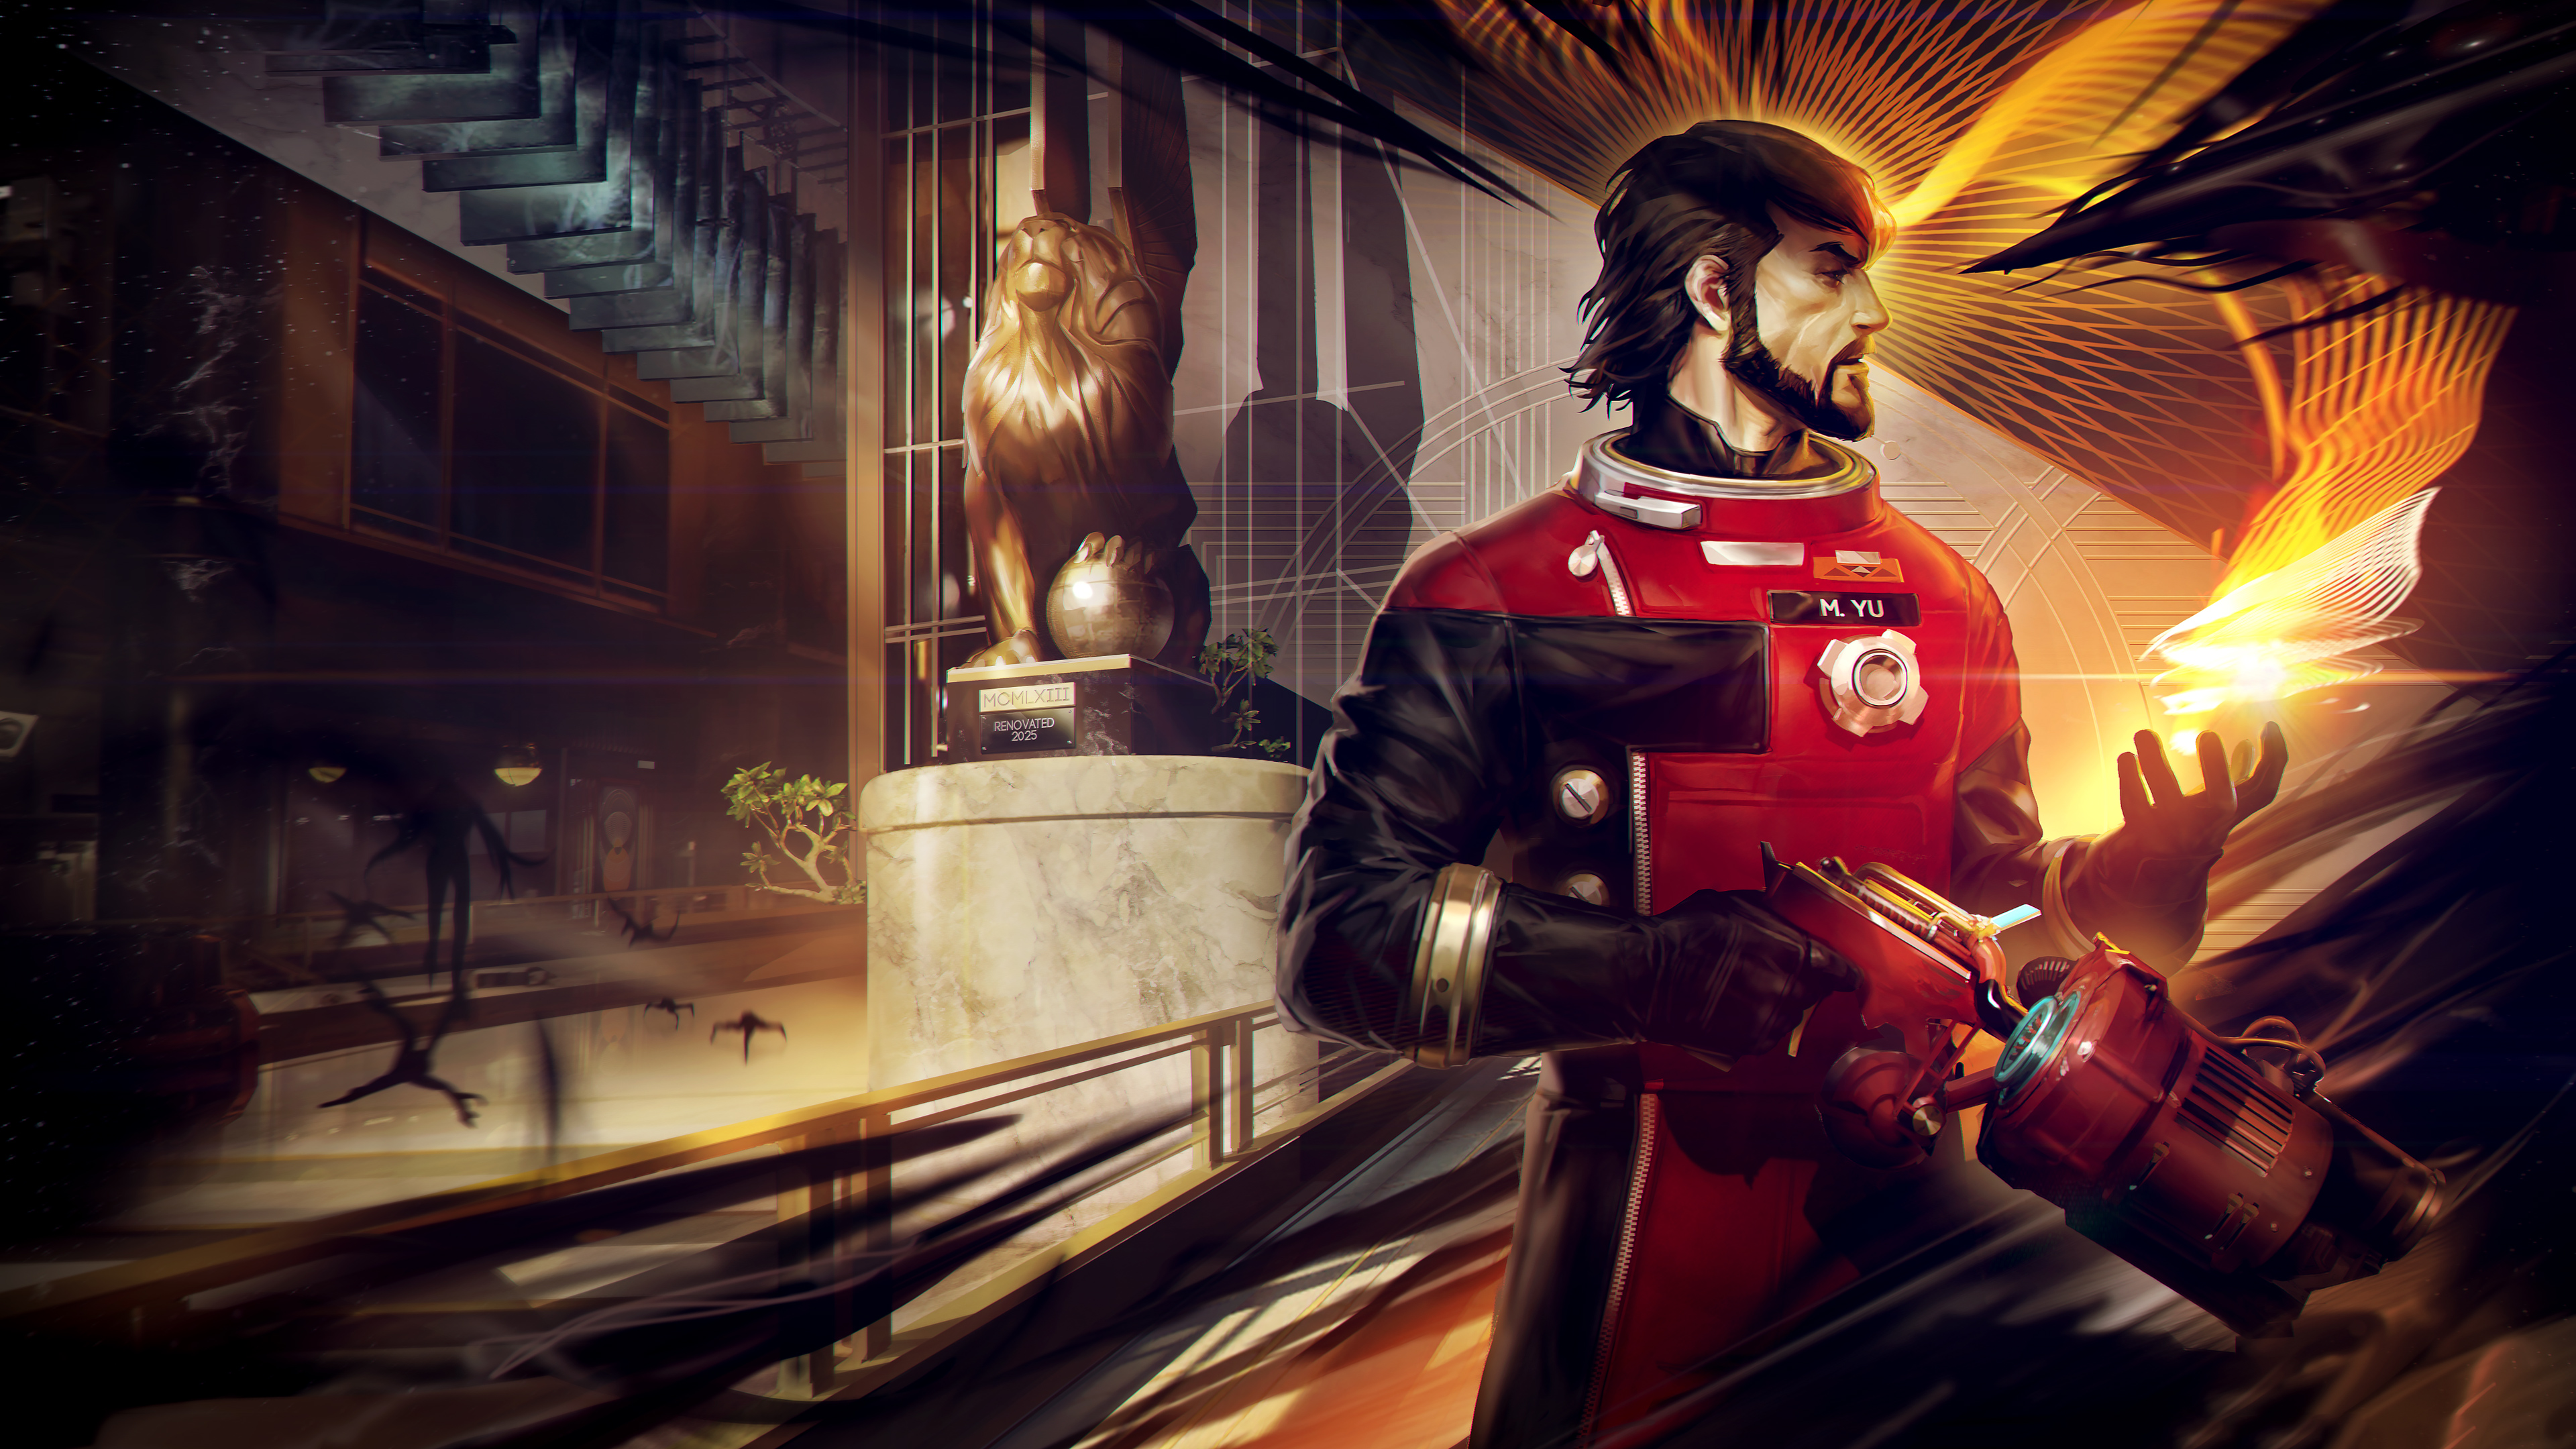 prey 2018 1538344014 - Prey 2018 - prey wallpapers, hd-wallpapers, games wallpapers, 4k-wallpapers, 2017 games wallpapers